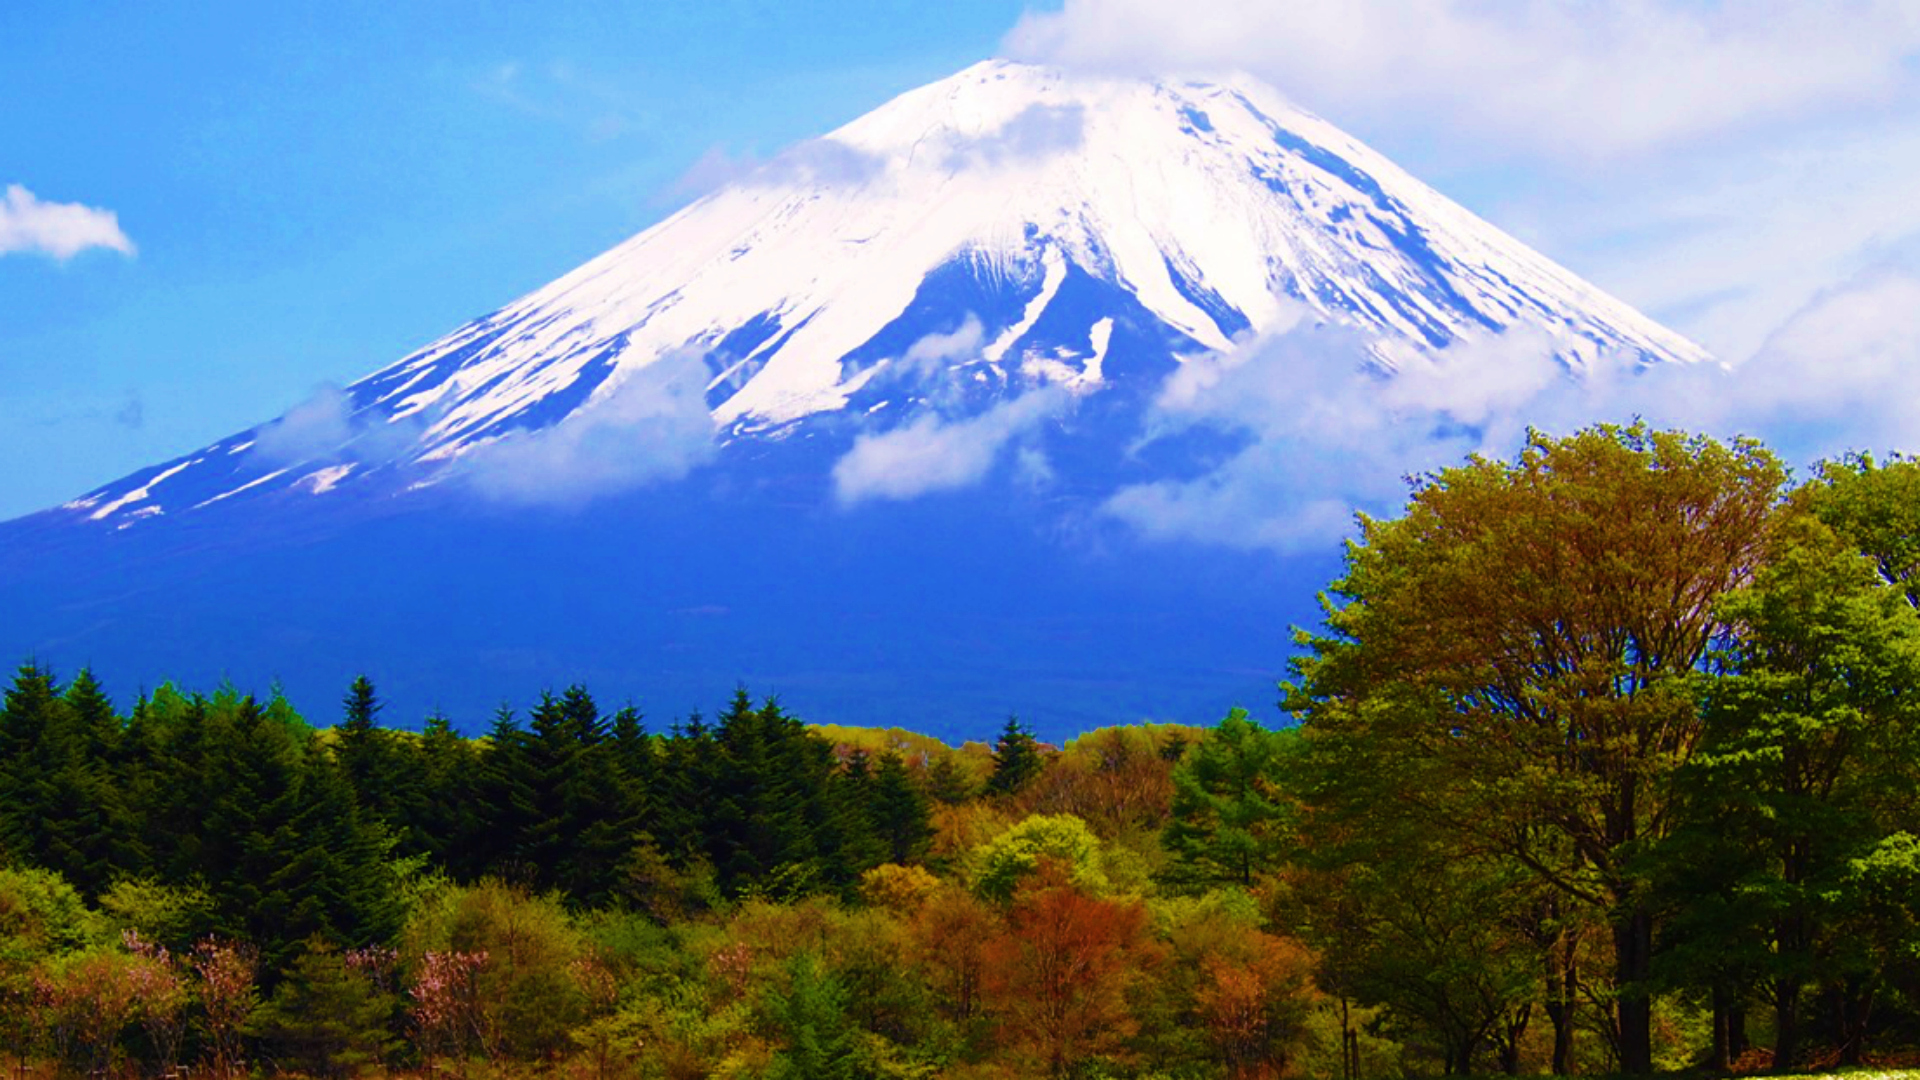 Mount Fuji Mountain Wallpaper   Travel HD Wallpapers 1920x1080